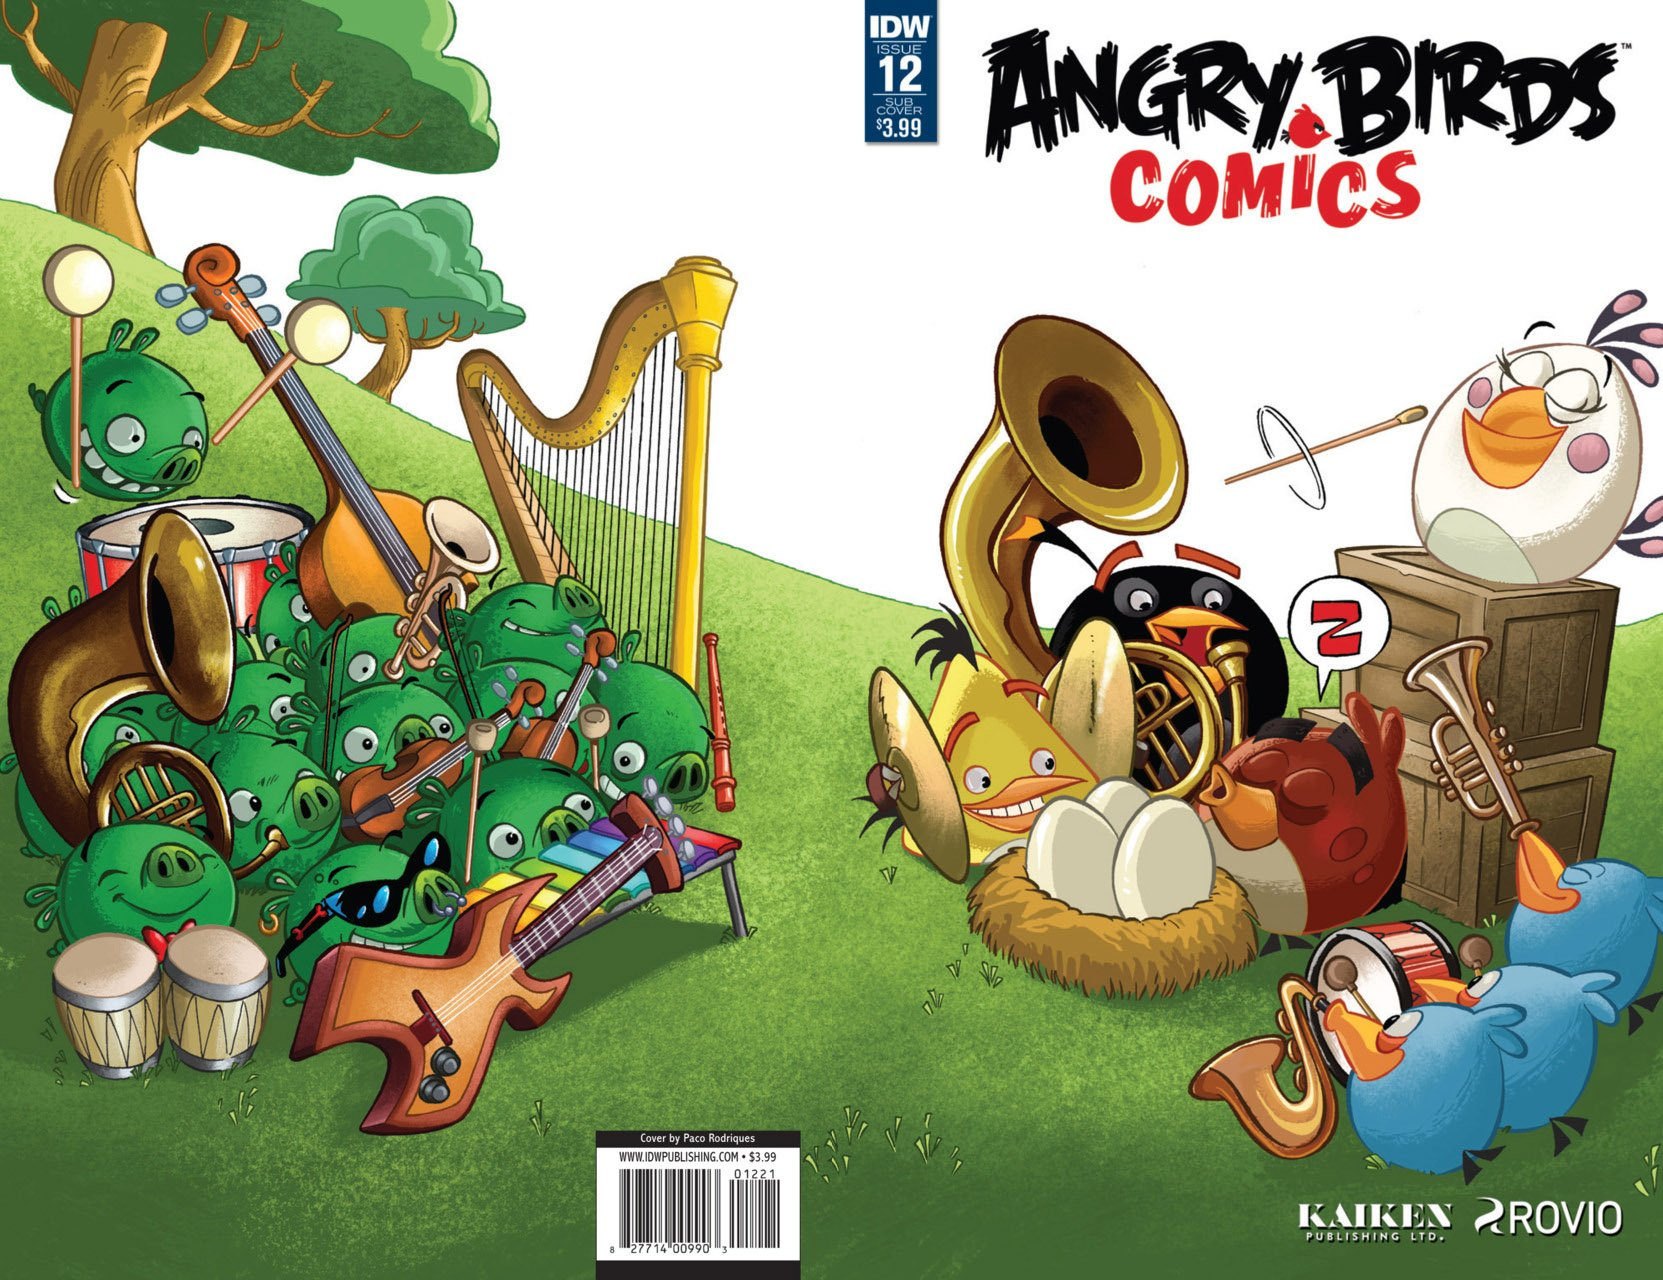 Angry Birds Comics Vol.2 012 (December 2016) (subscriber cover)